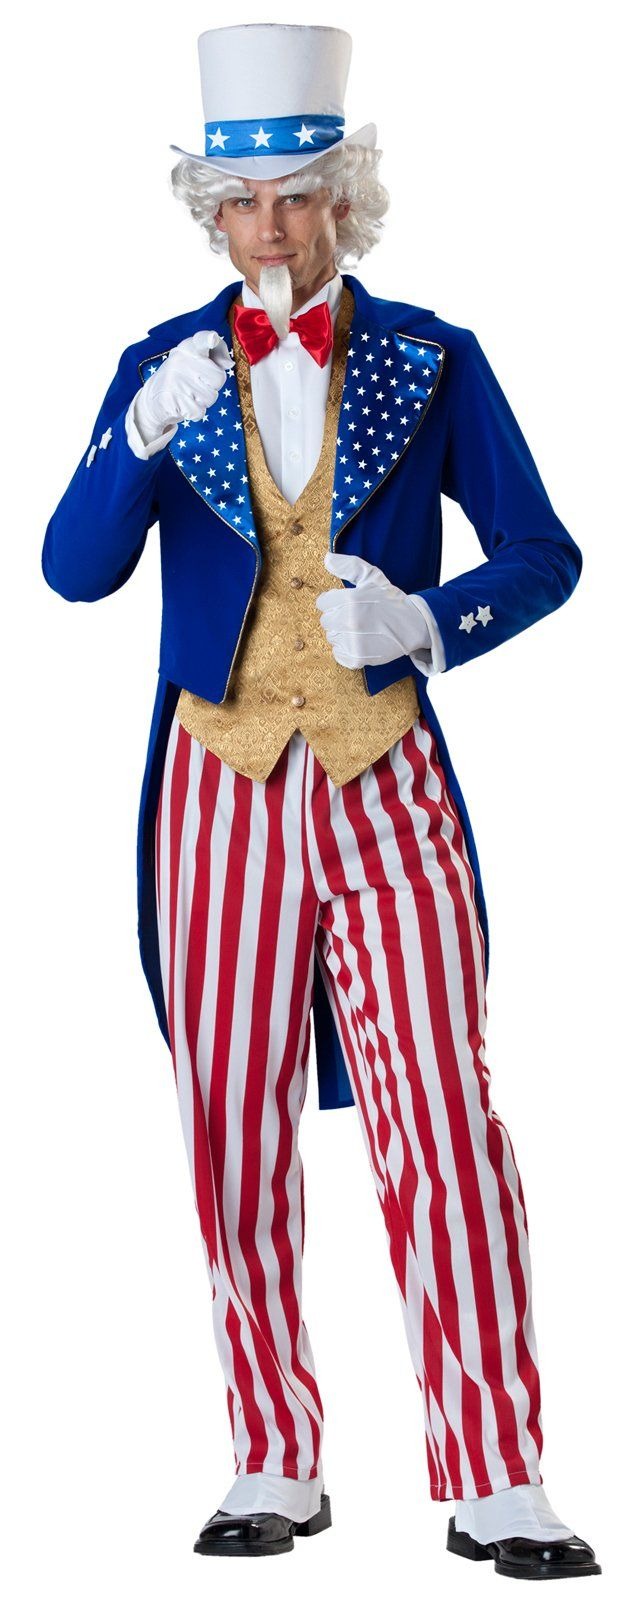 Uncle Sam Elite Collection Adult Costume from BuyCostumes.com